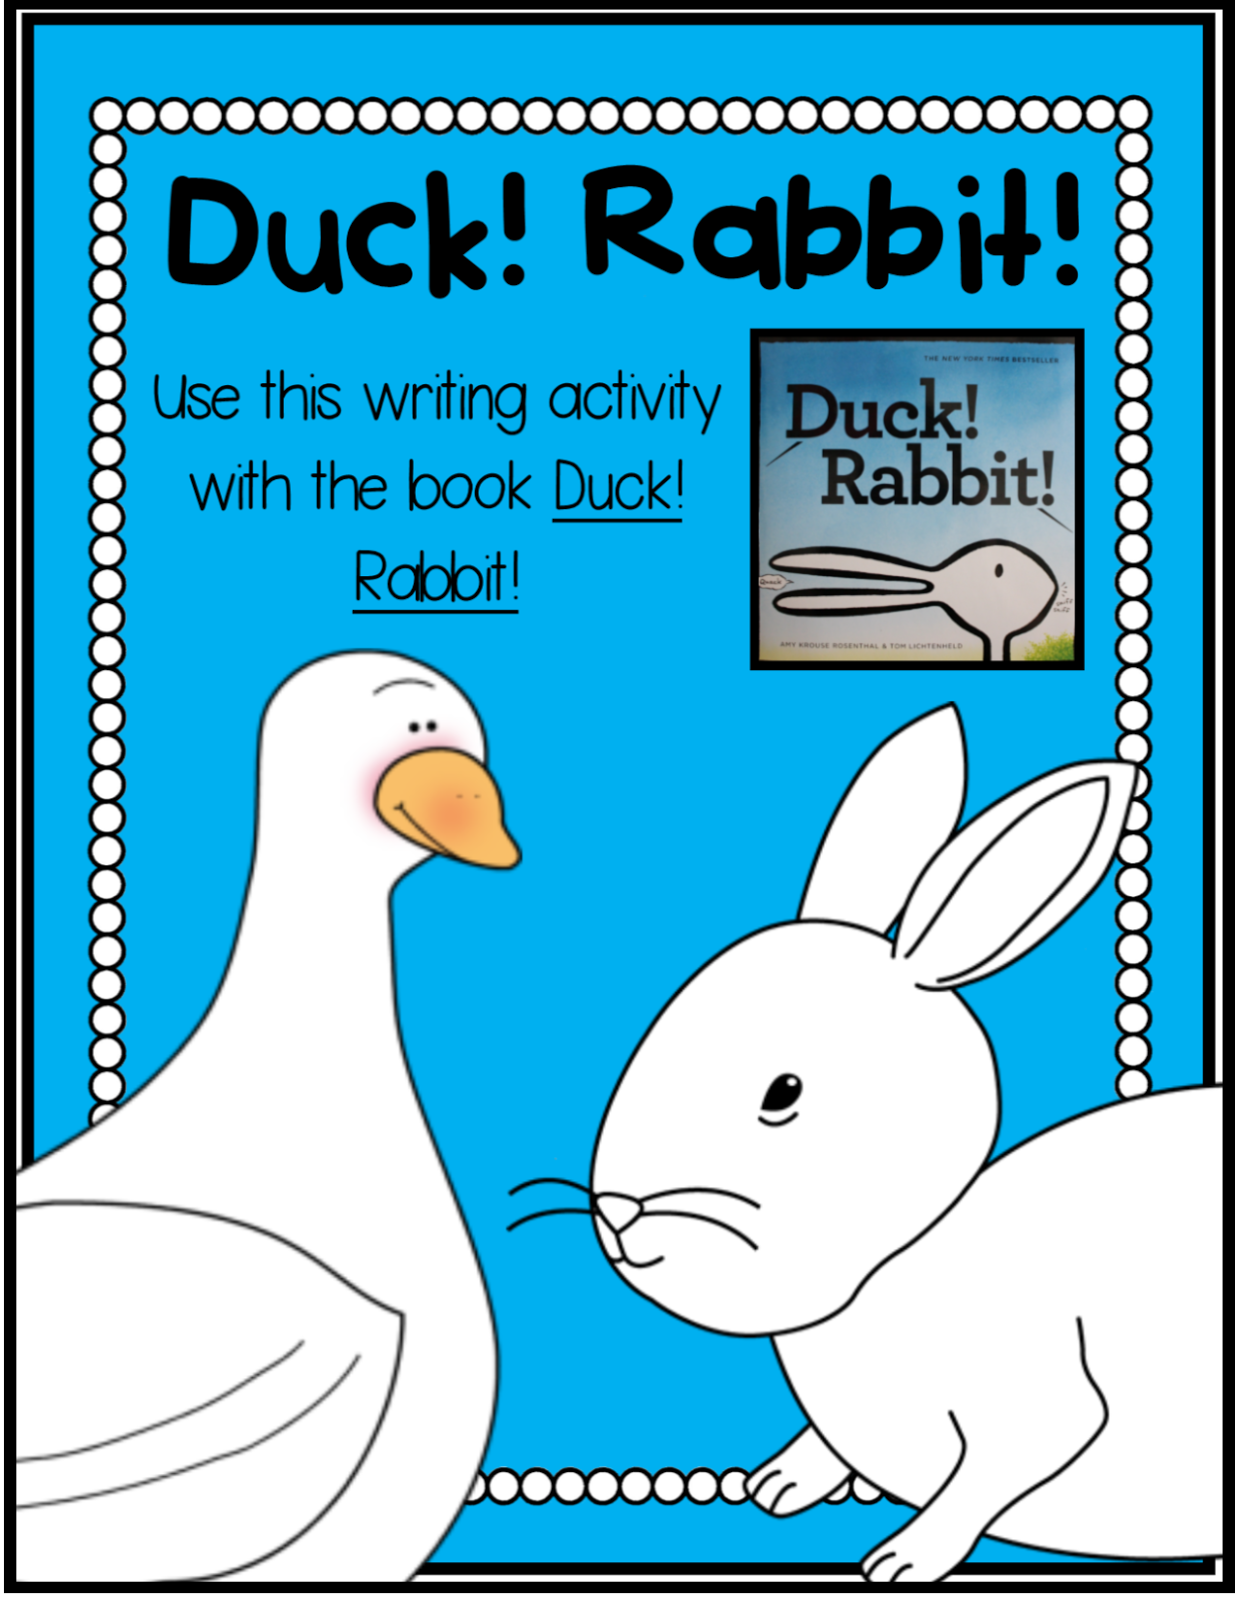 http://www.teacherspayteachers.com/Product/Duck-Rabbit-Writing-Activity-1439917